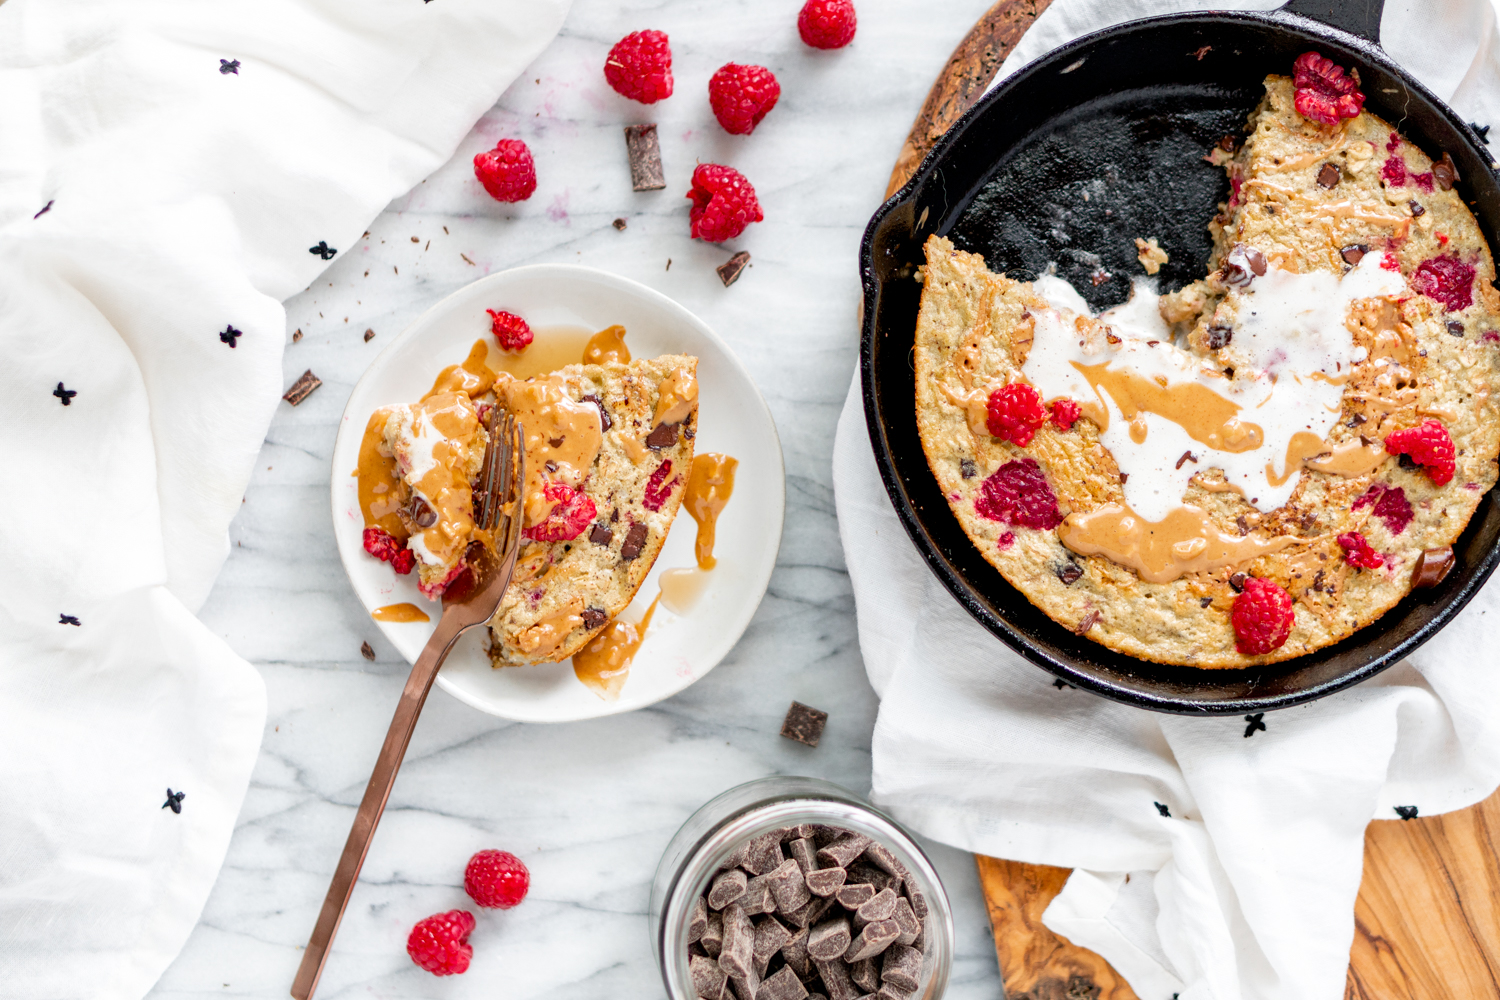 Raspberry Chocolate Baked Oatmeal with a Peanut Butter Swirl